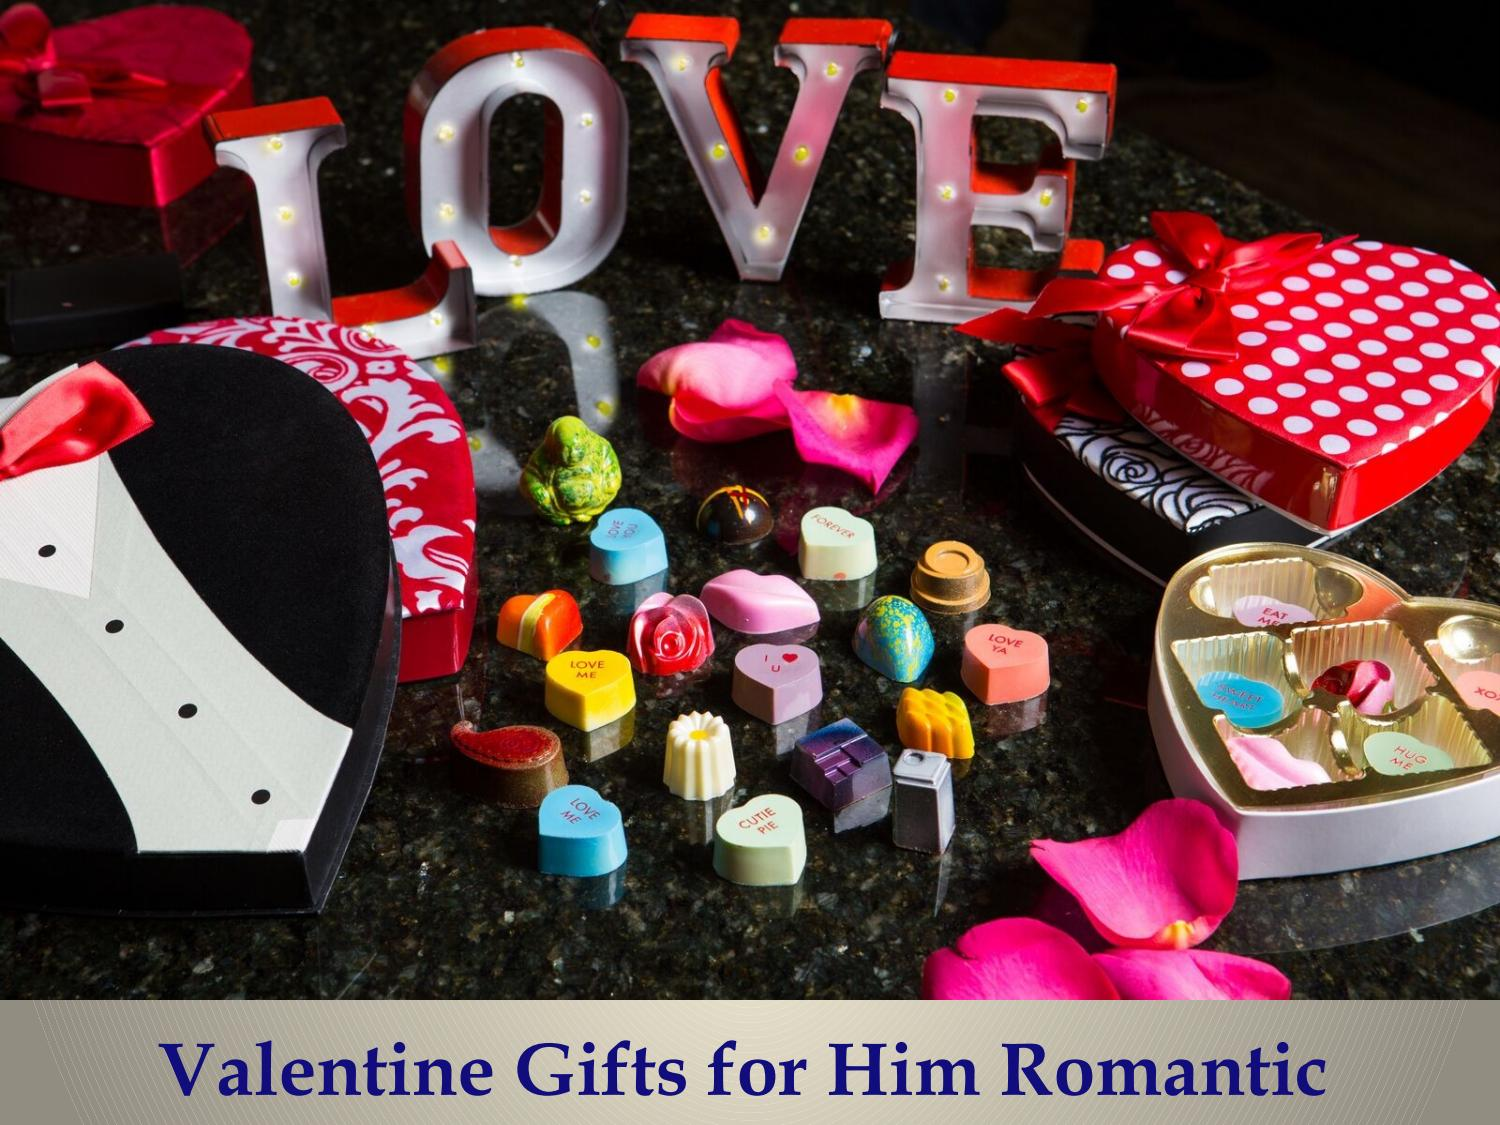 Valentine S Day Gifts Chocolate Valentine Gifts For Him Romantic By Cacaoandcardamom Issuu